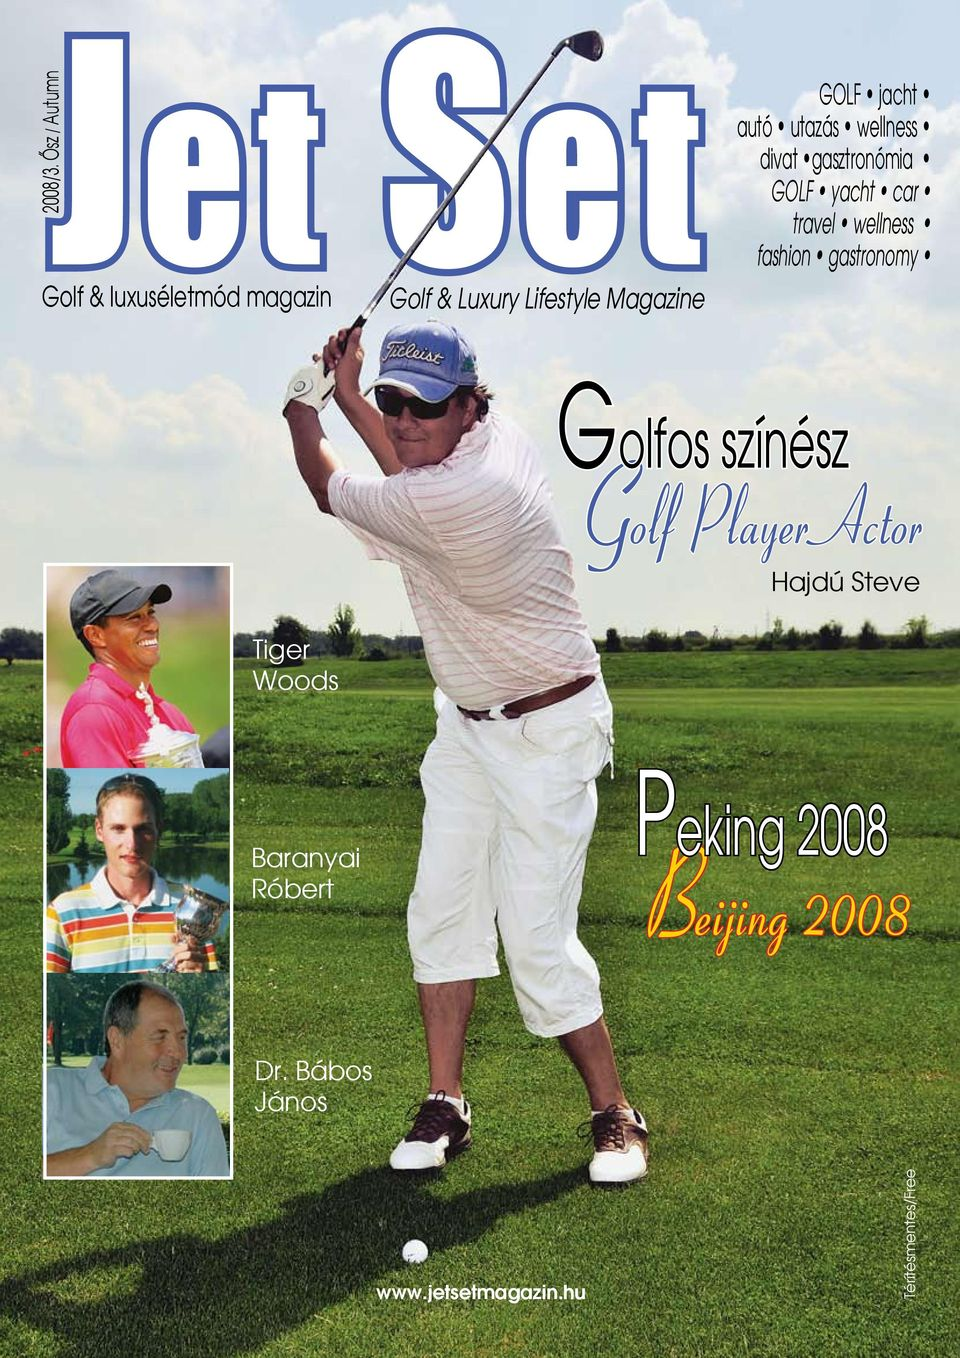 wellness fashion gastronomy Golfos színész Golf Player Actor Hajdú Steve Tiger Woods